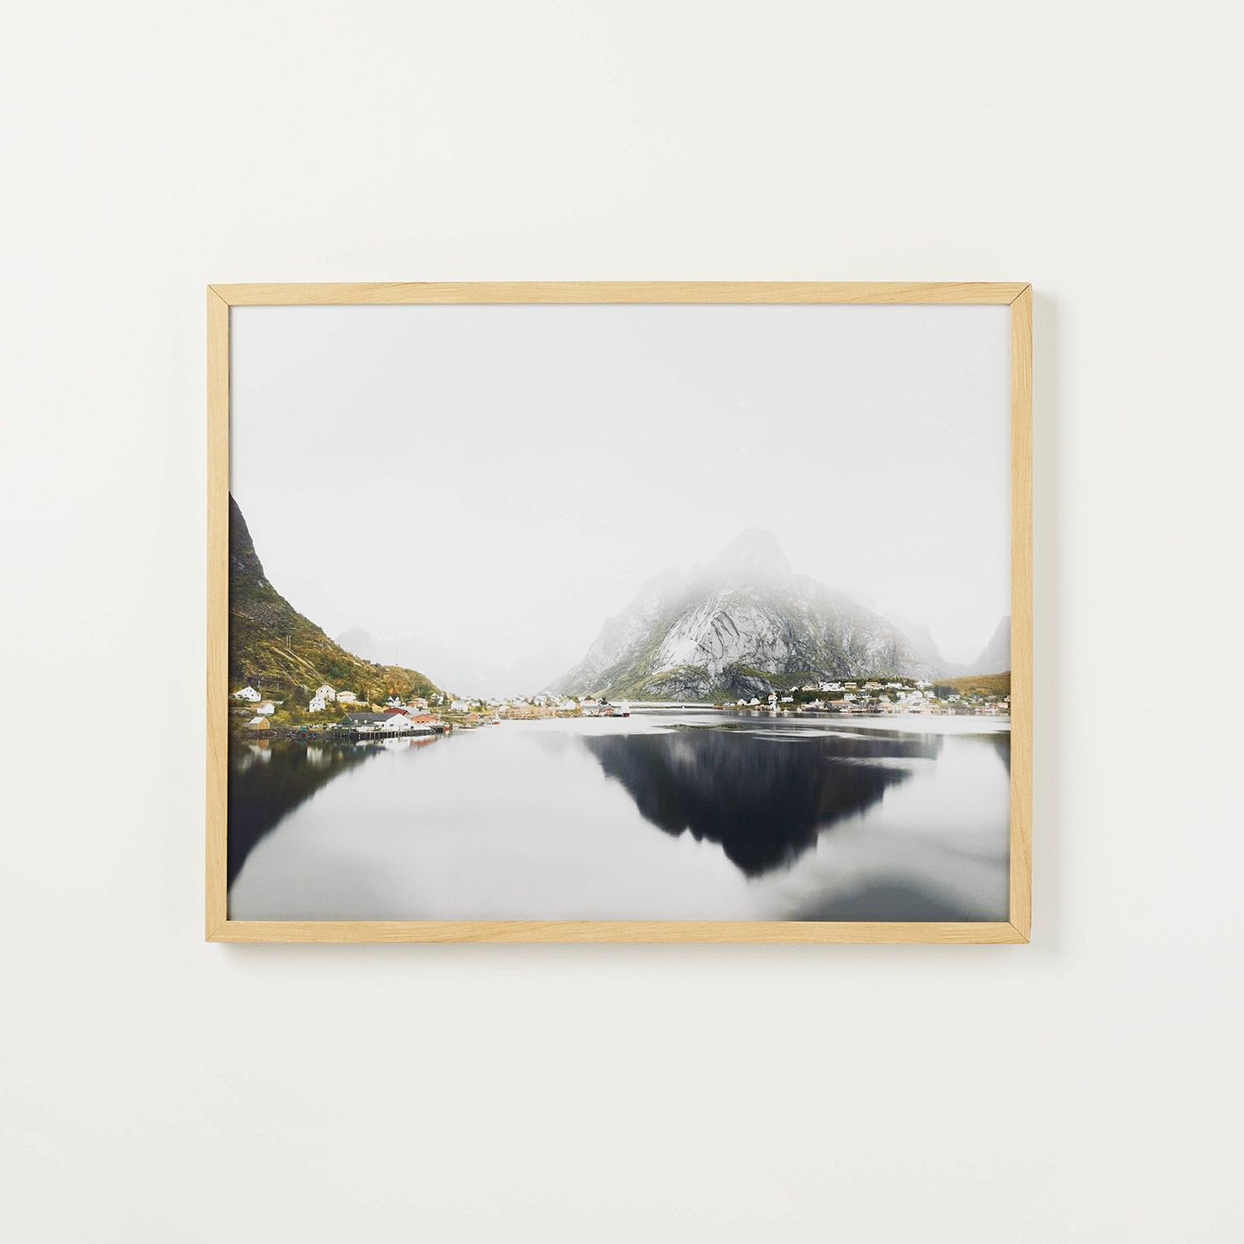 framed wall art with landscape photo